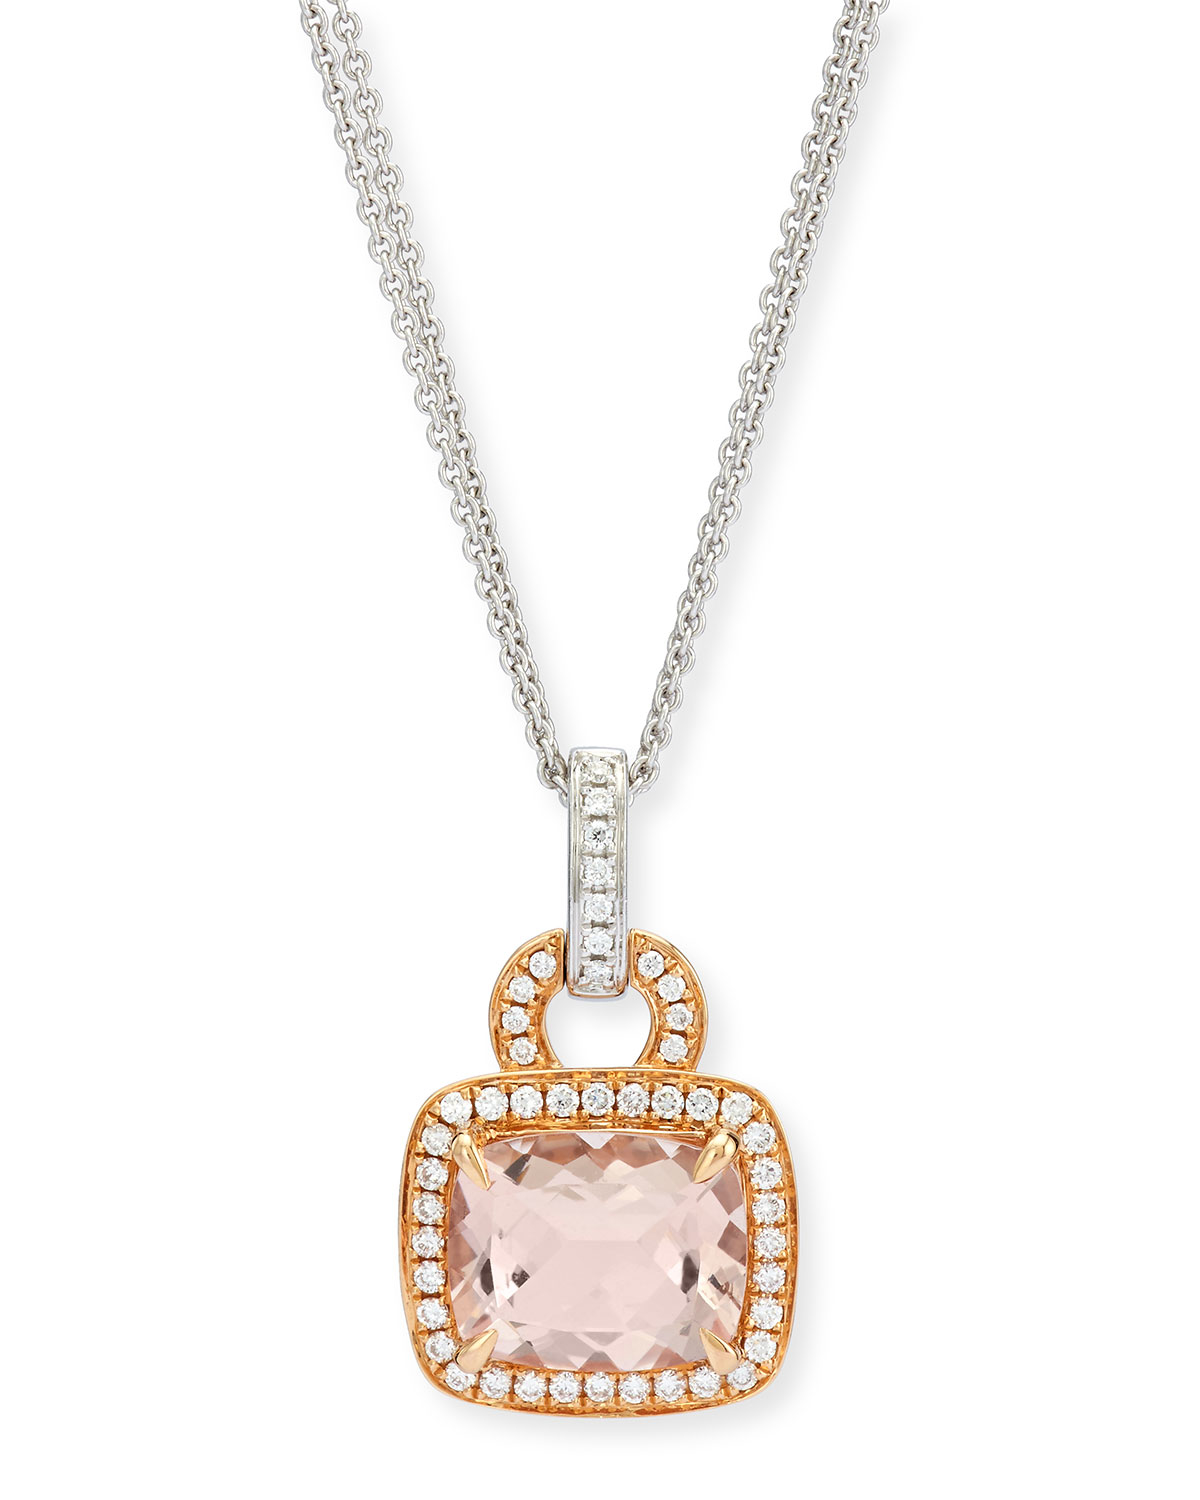 Lyst  Frederic Sage Roma Morganite & Diamond Pendant. Guardian Angel Necklace. Thin Wedding Rings. Simulated Diamond Wedding Rings. 1500 Engagement Rings. Costume Gold Jewellery. Antique Diamond. 14k White Gold Bangle Bracelet. 24k Engagement Rings